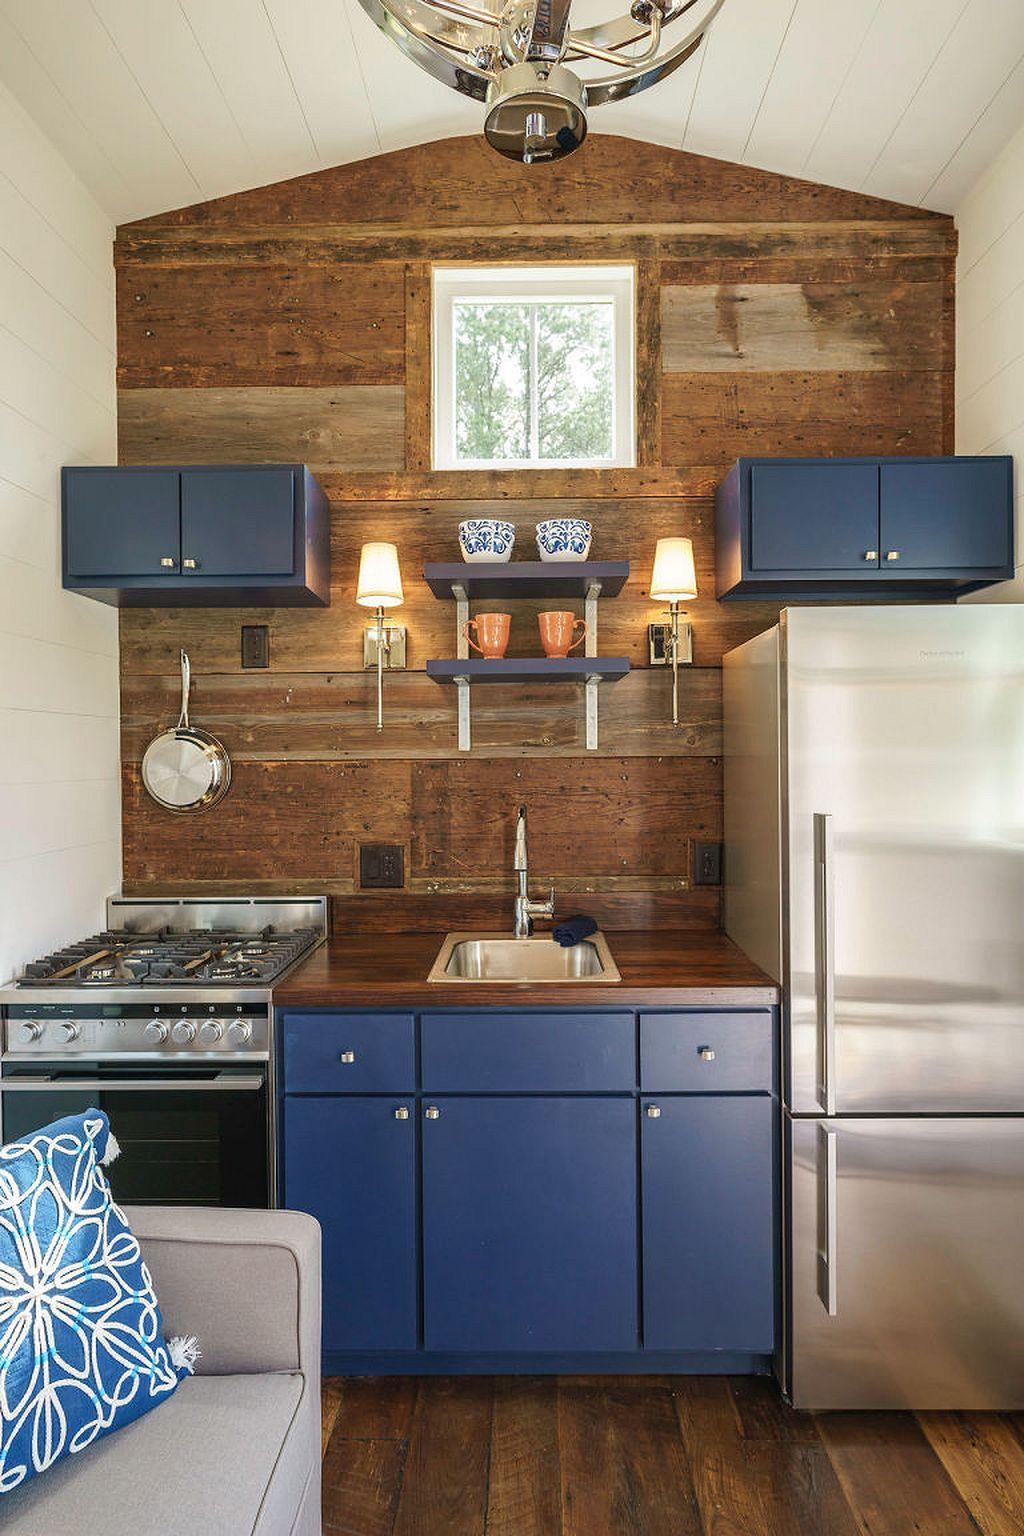 Fabulous Tiny Houses Design That Maximize Style And Function 72 ...